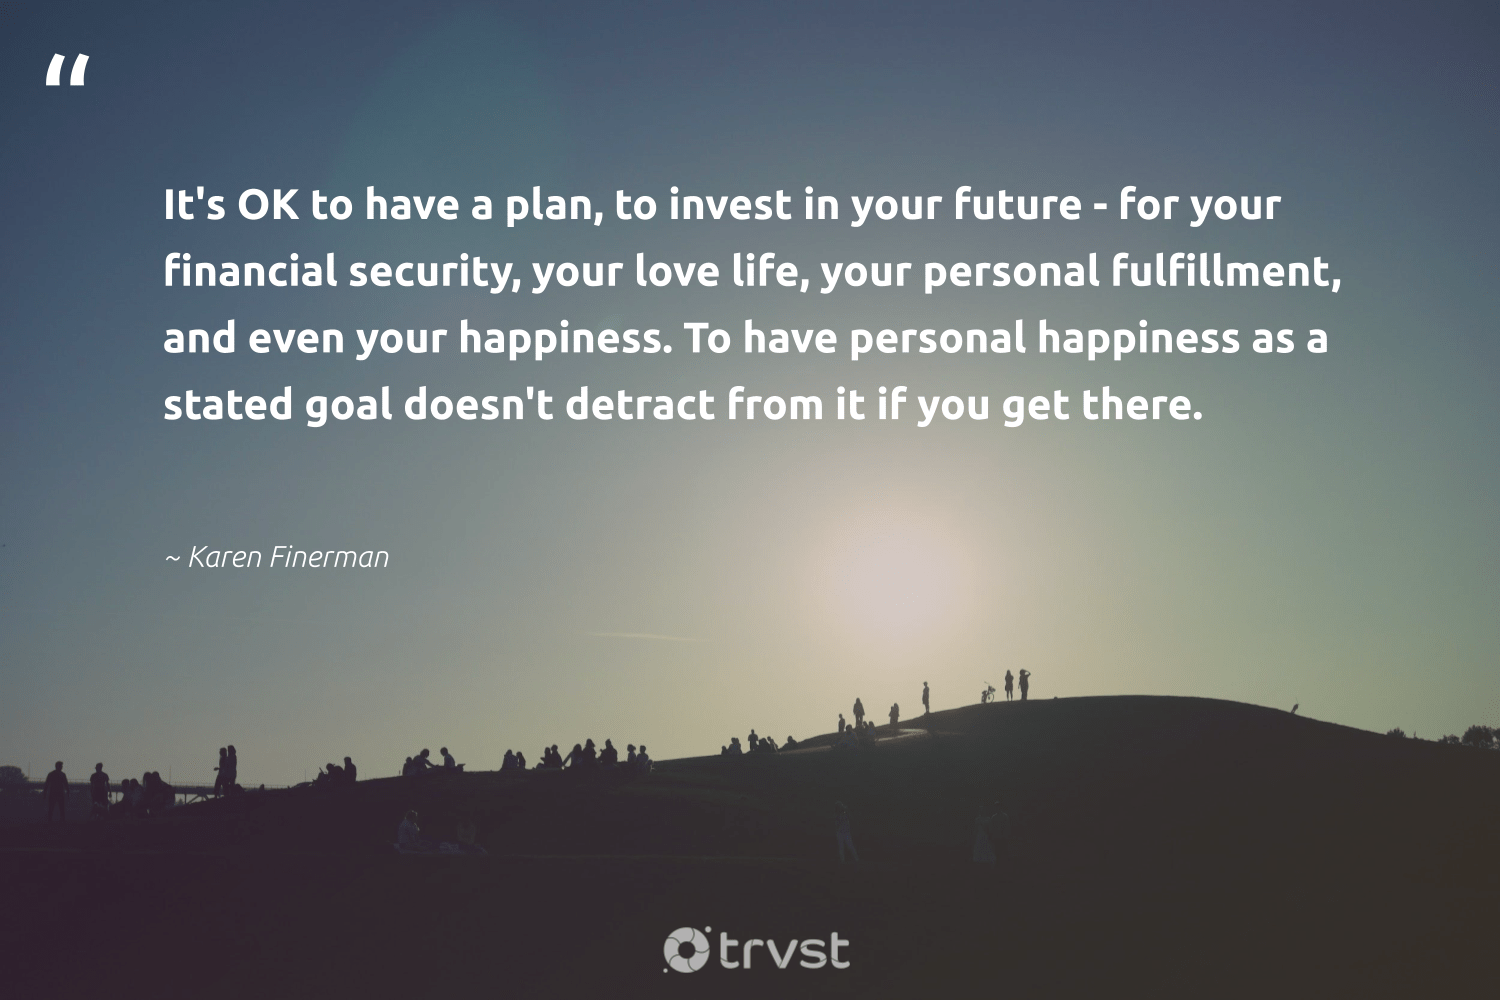 """""""It's OK to have a plan, to invest in your future - for your financial security, your love life, your personal fulfillment, and even your happiness. To have personal happiness as a stated goal doesn't detract from it if you get there.""""  - Karen Finerman #trvst #quotes #love #happiness #health #planetearthfirst #nevergiveup #collectiveaction #changemakers #socialimpact #begreat #changetheworld"""